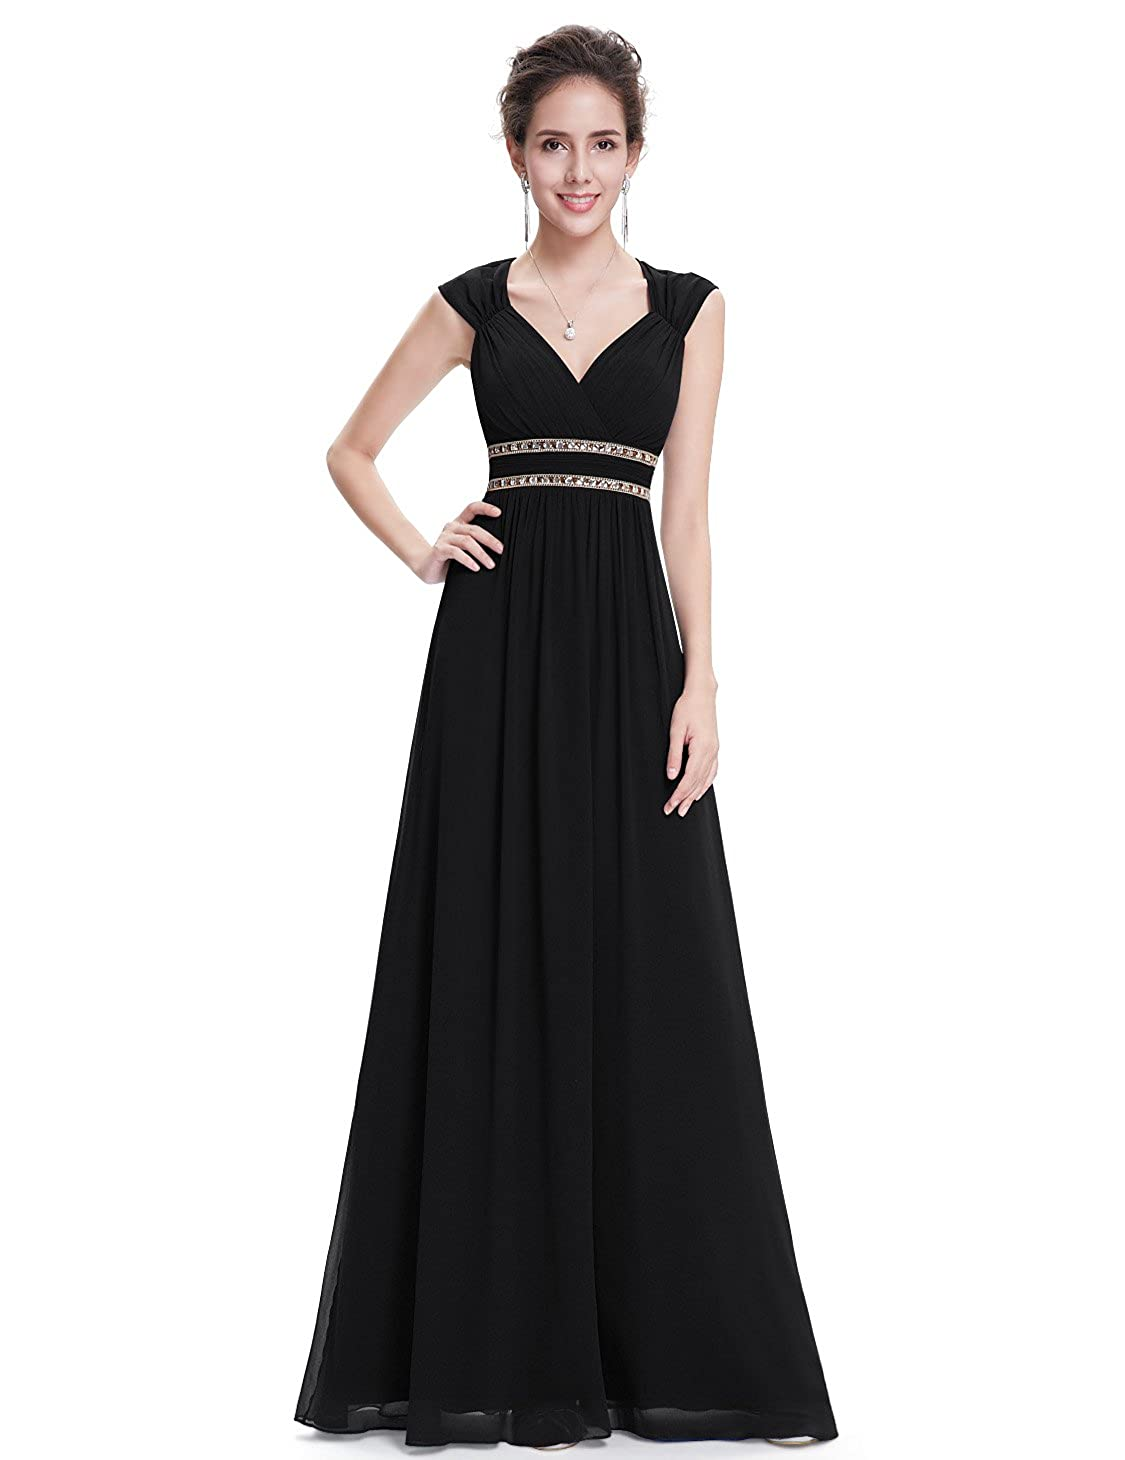 44bd97dab62 Ever-Pretty Women s Elegant V-Neck Sleeveless Formal Long Evening Dress  08697 at Amazon Women s Clothing store